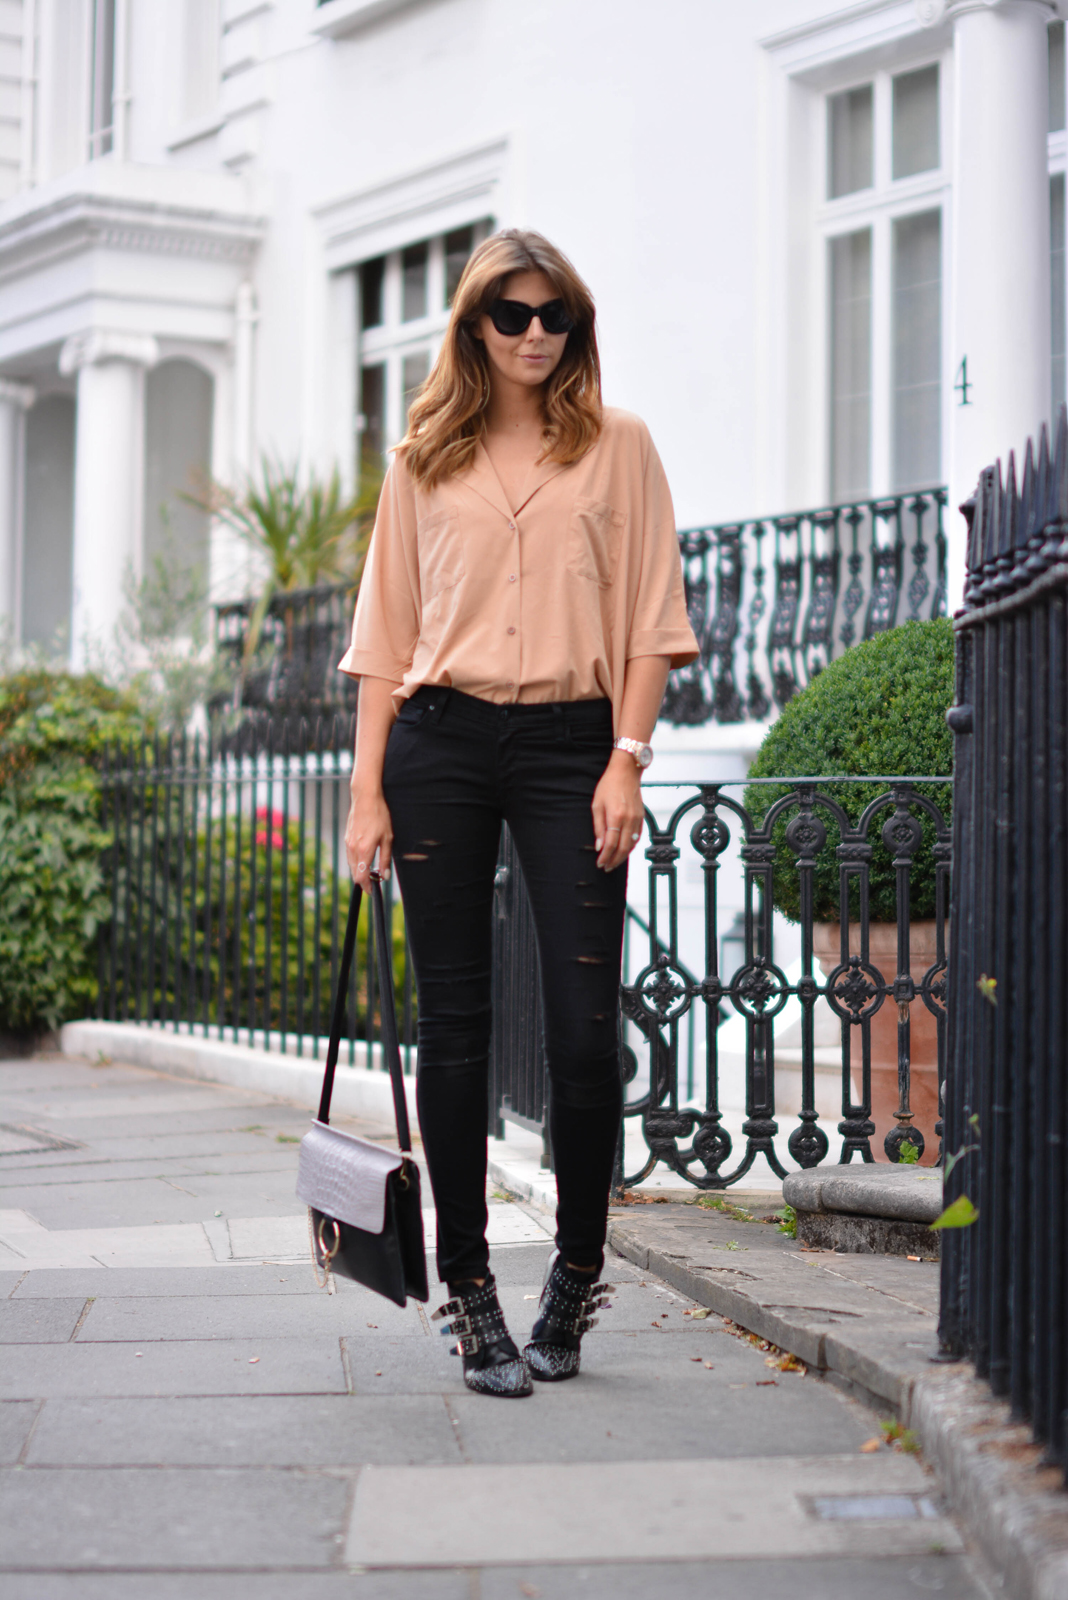 EJSTYLE - Emma Hill wears camel shirt, ripped black skinny jeans, Chloe Faye style bag, black cats eye chunky sunglasses, black studded ankle boots, London Street style